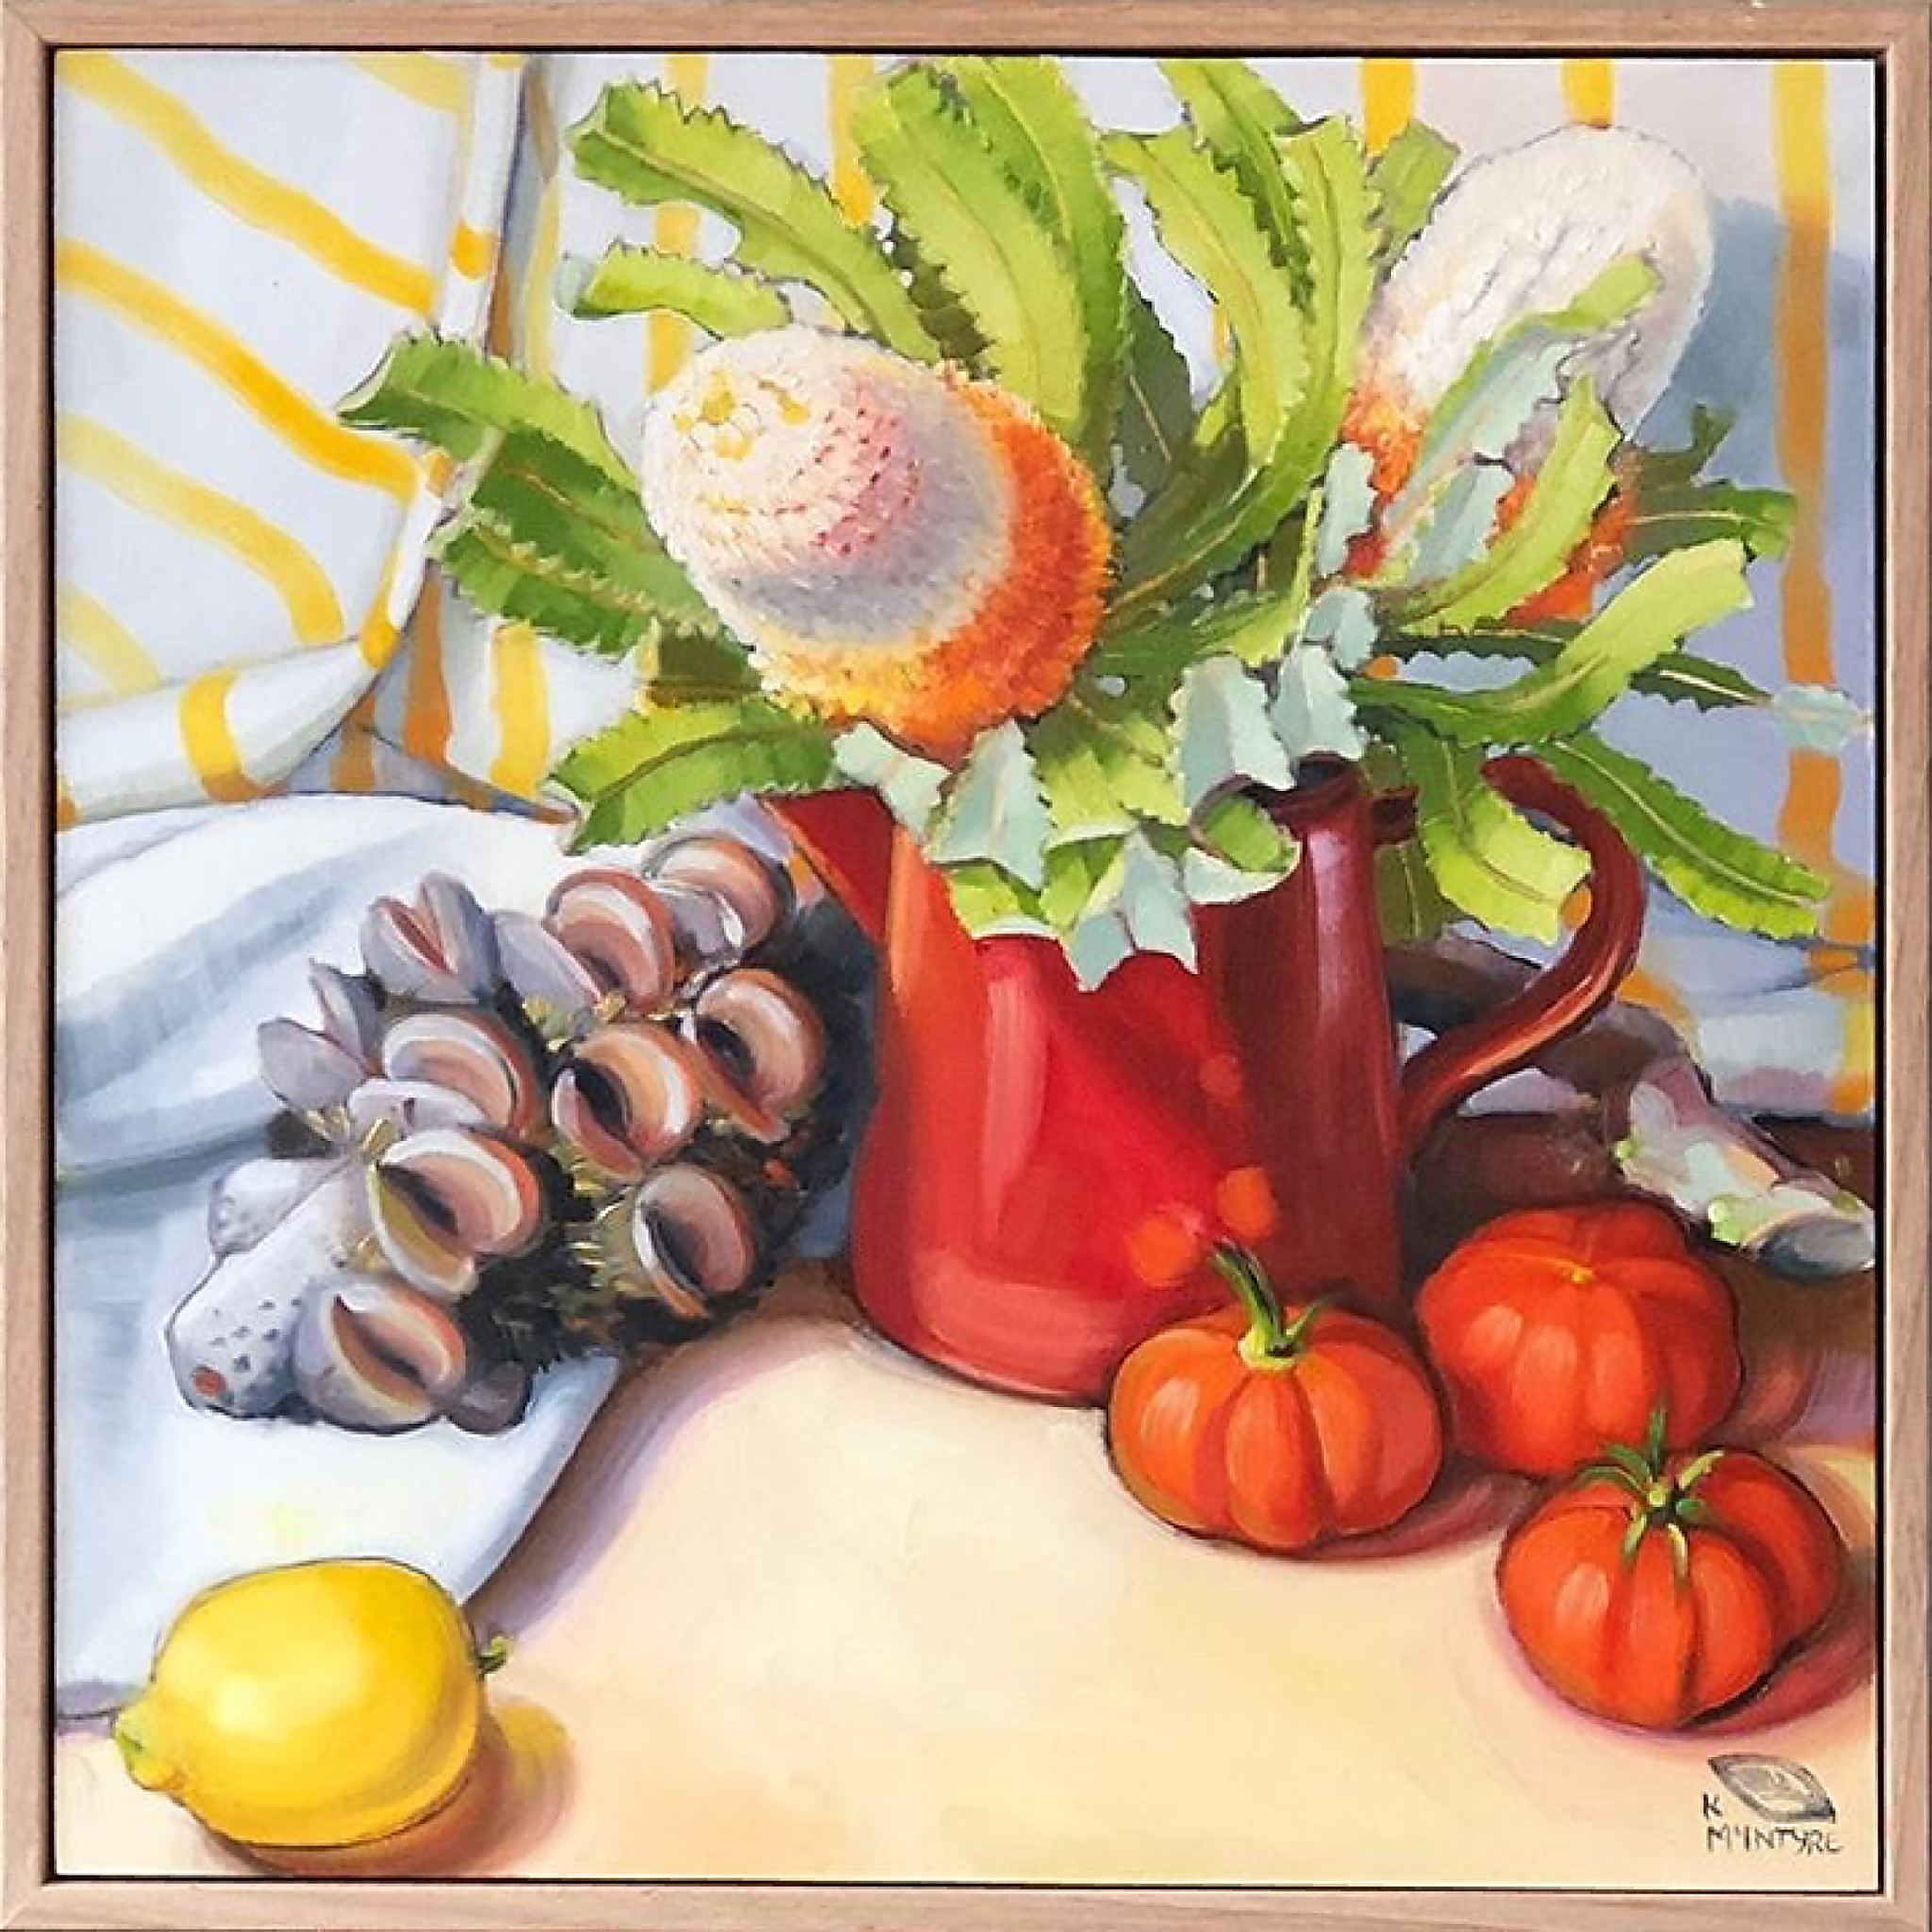 Banksias and Tomatoes II by Kirsty McIntyre